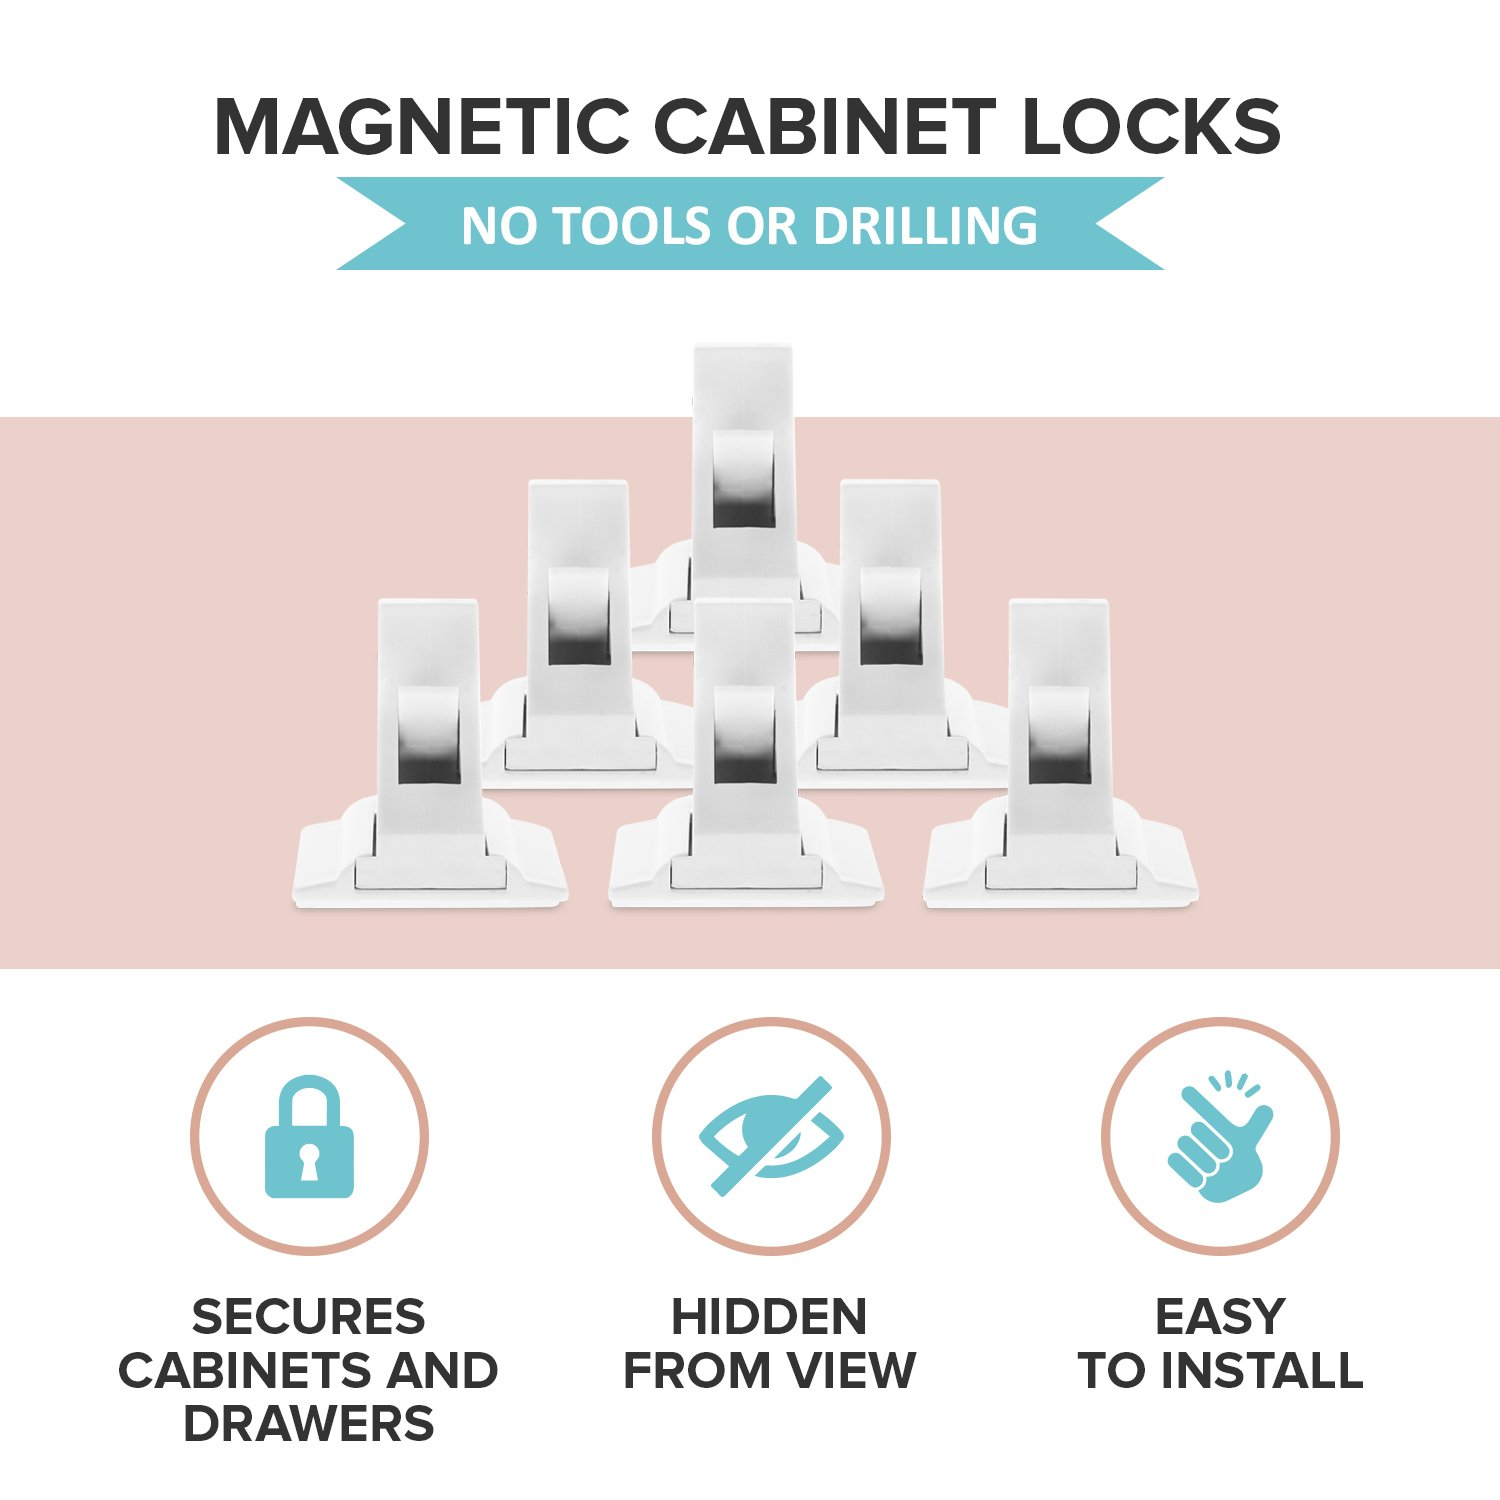 3 Key for Baby Proofing Cabinets Easy Install for Toddler and Childproof with Adhesive Latch Drawers and Locking Cupboard No Tools or Drill Magnetic Child Safety Cabinet Locks 12 Lock